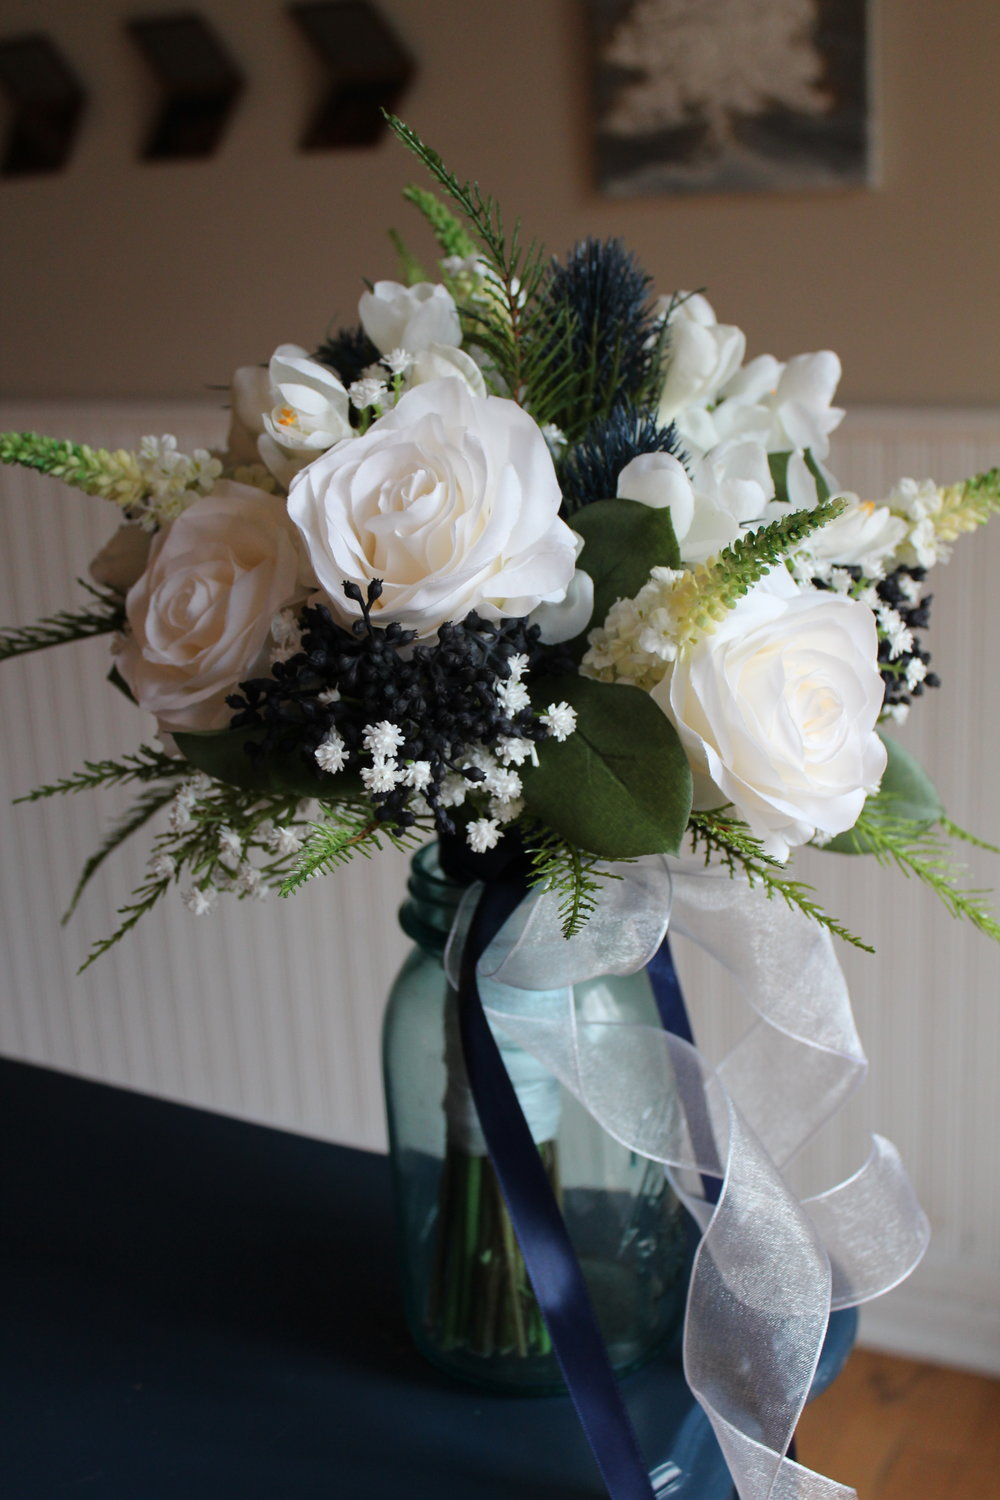 silk-bridal-bouquet-recreation-scottish-destination-wedding.jpg